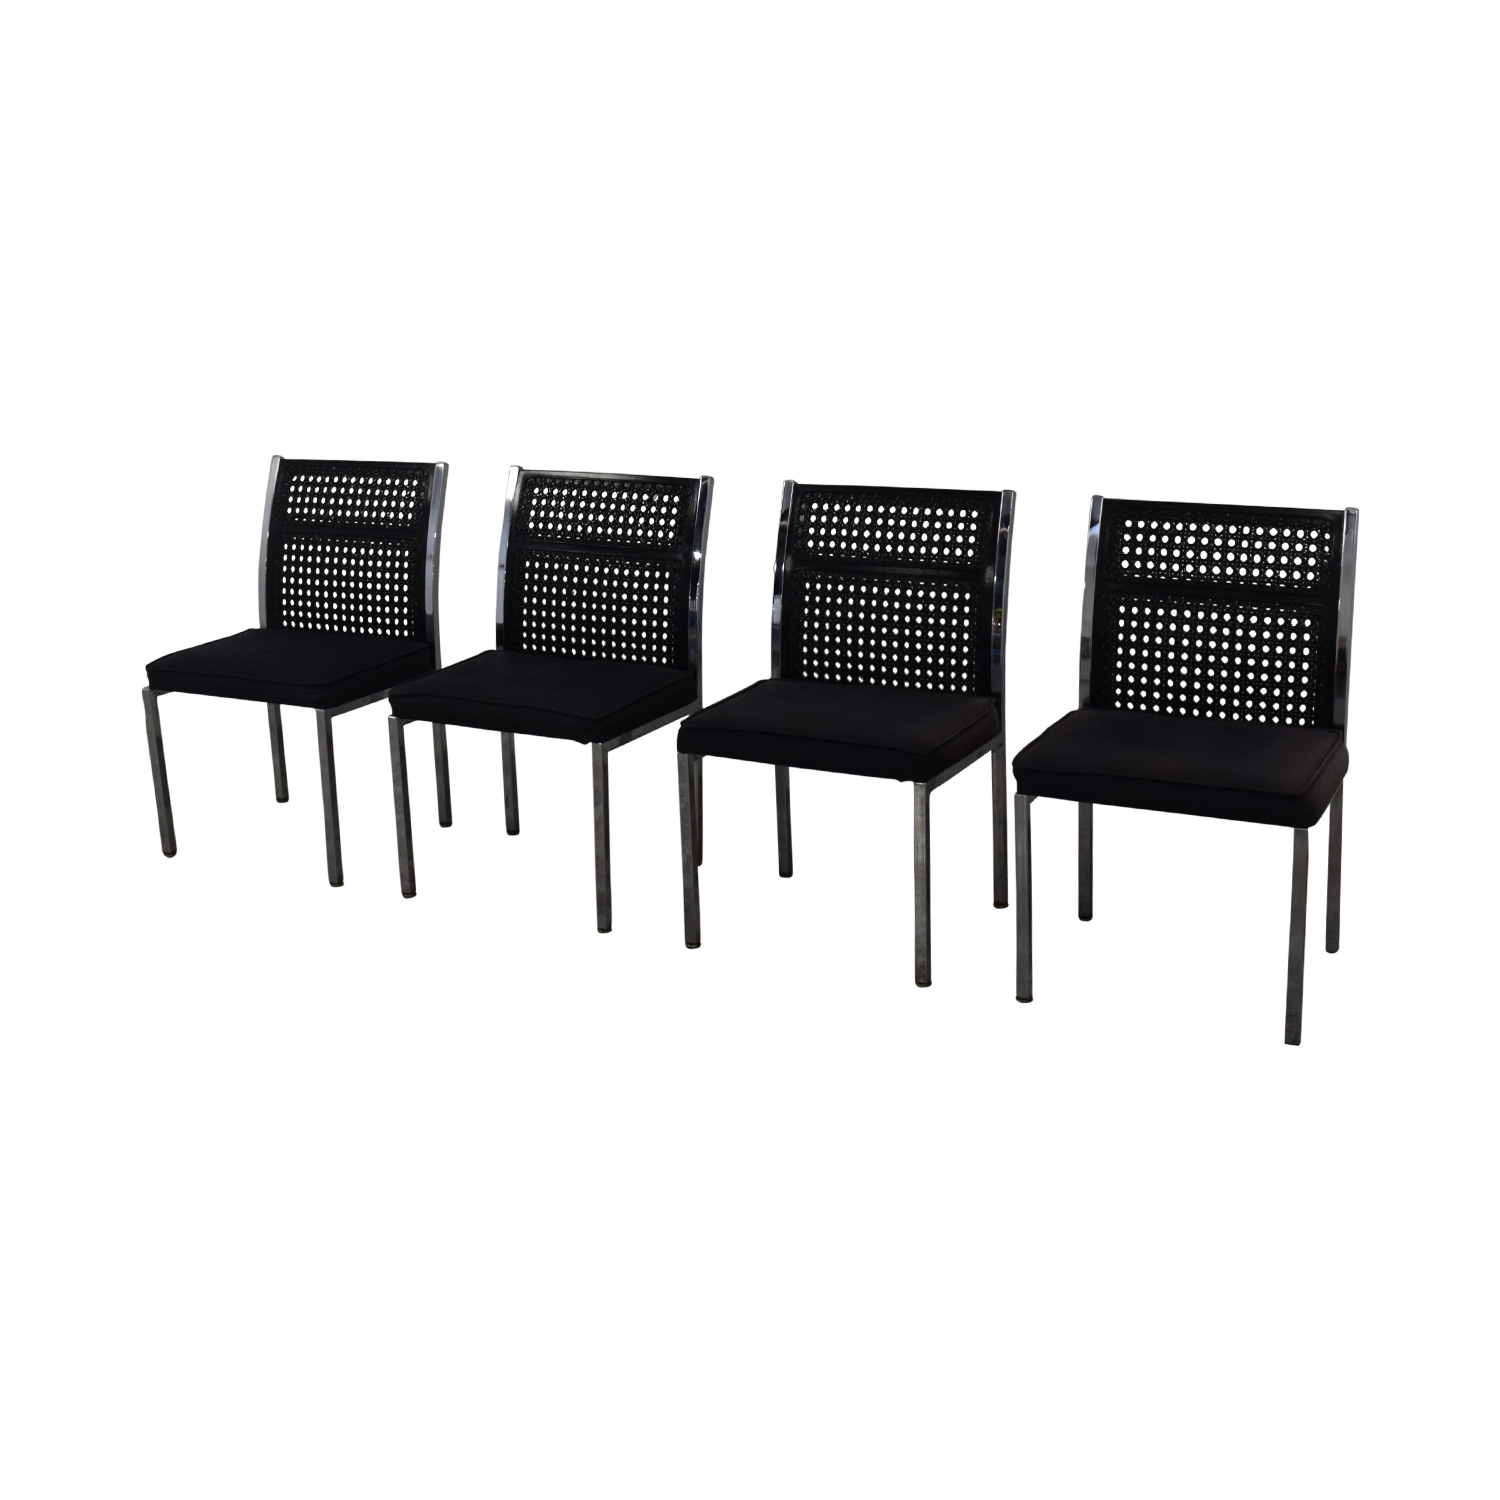 By Design Black Cane Back Chairs / Chairs